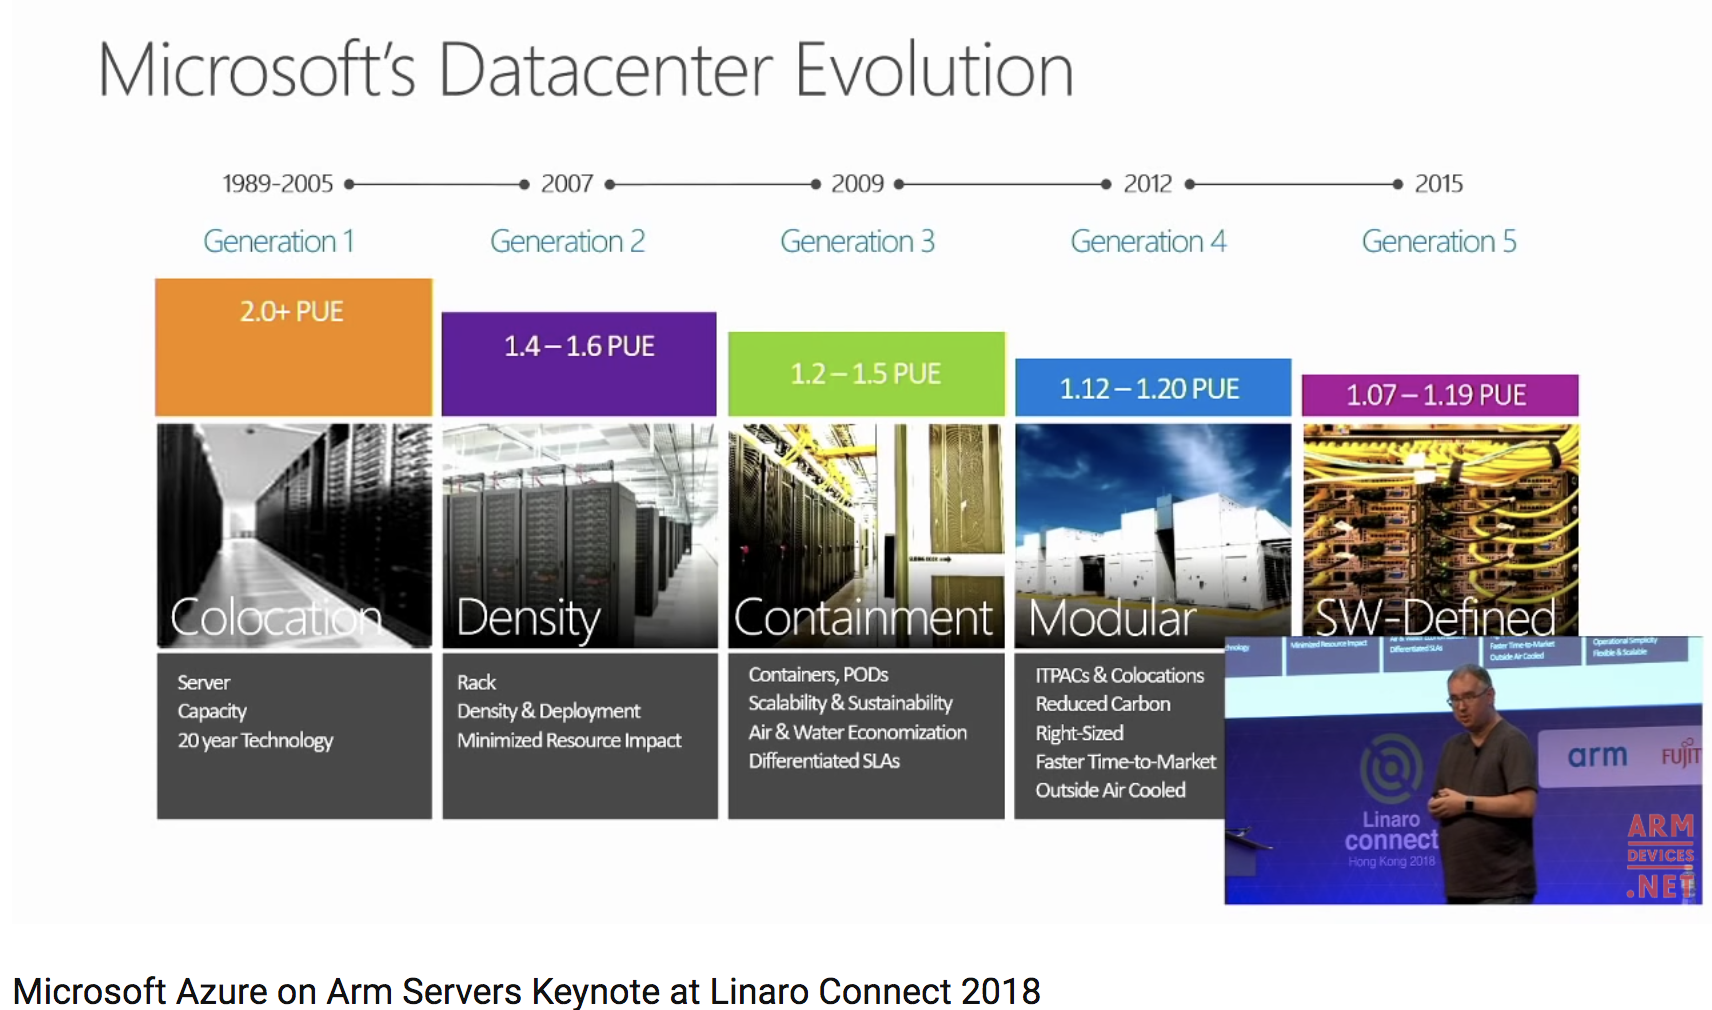 public/images/cloud/linaro_hkg18__microsoft__datacenter_evolution.png